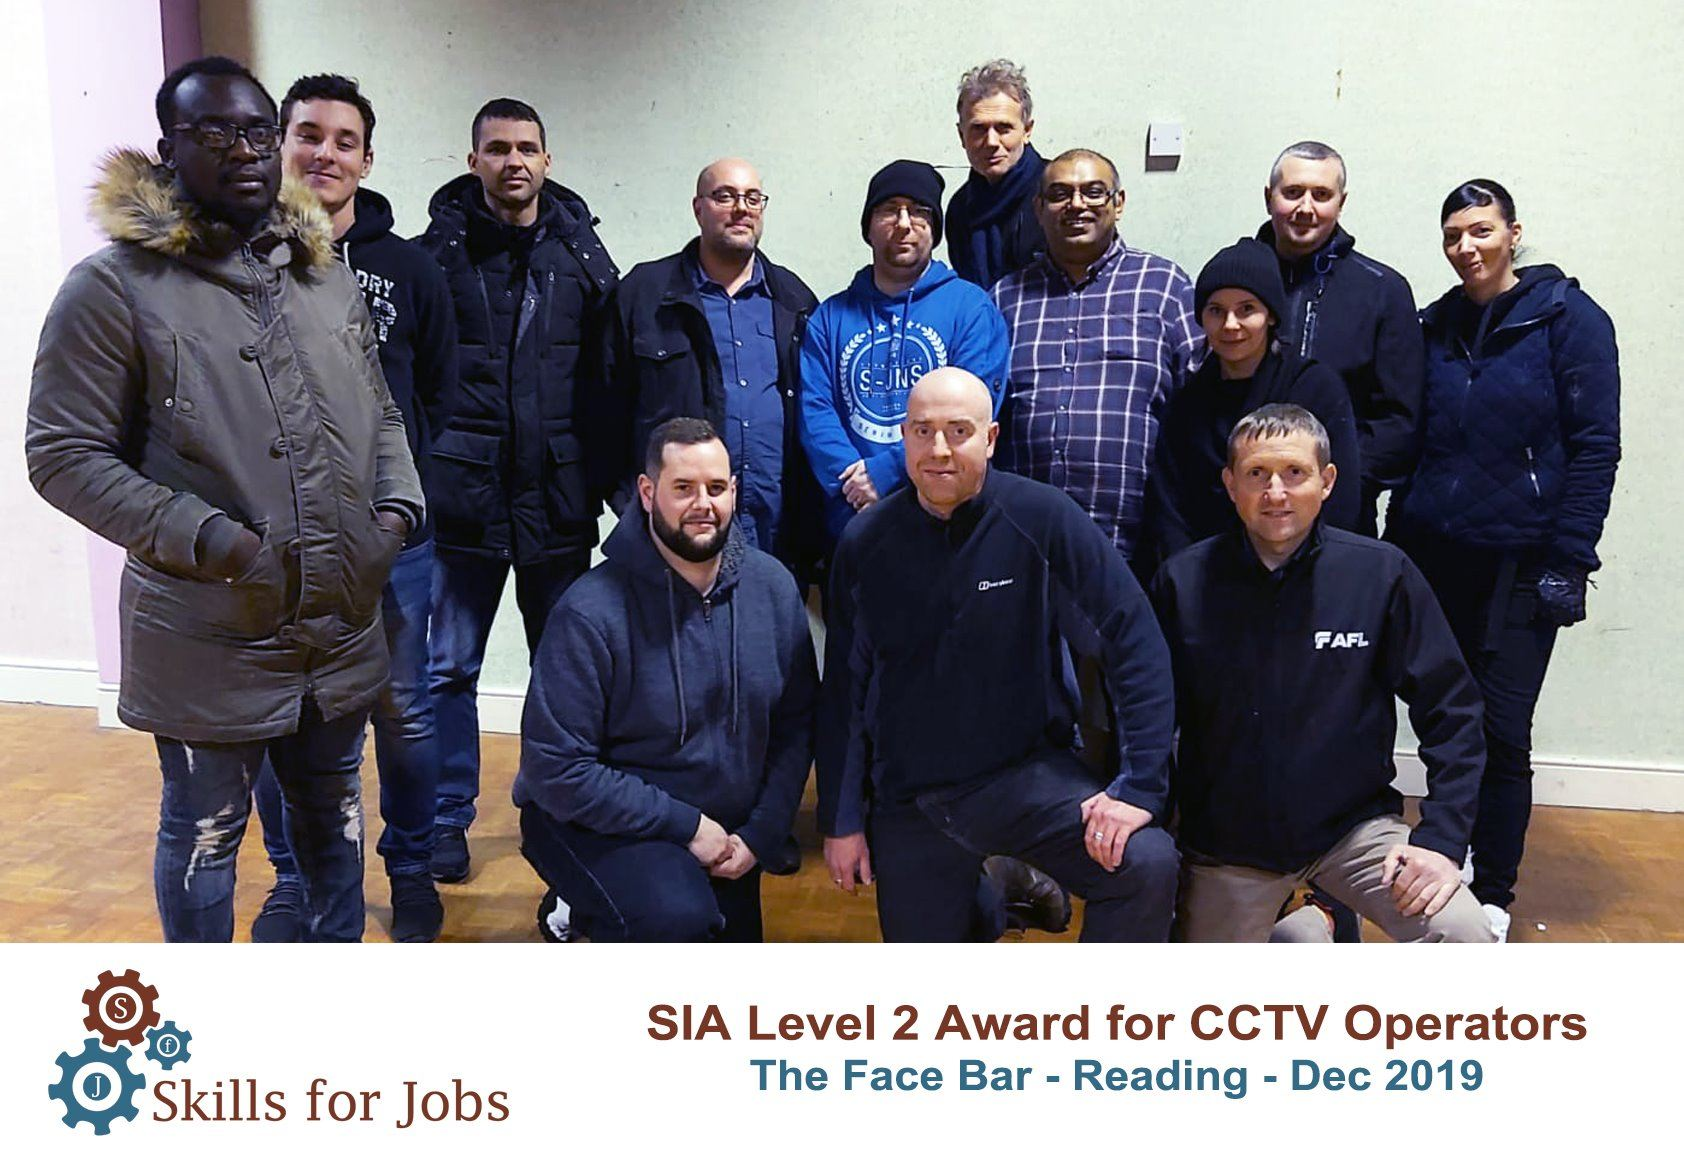 Reading - SIA Level 2 Award for CCTV Operators - December 2019